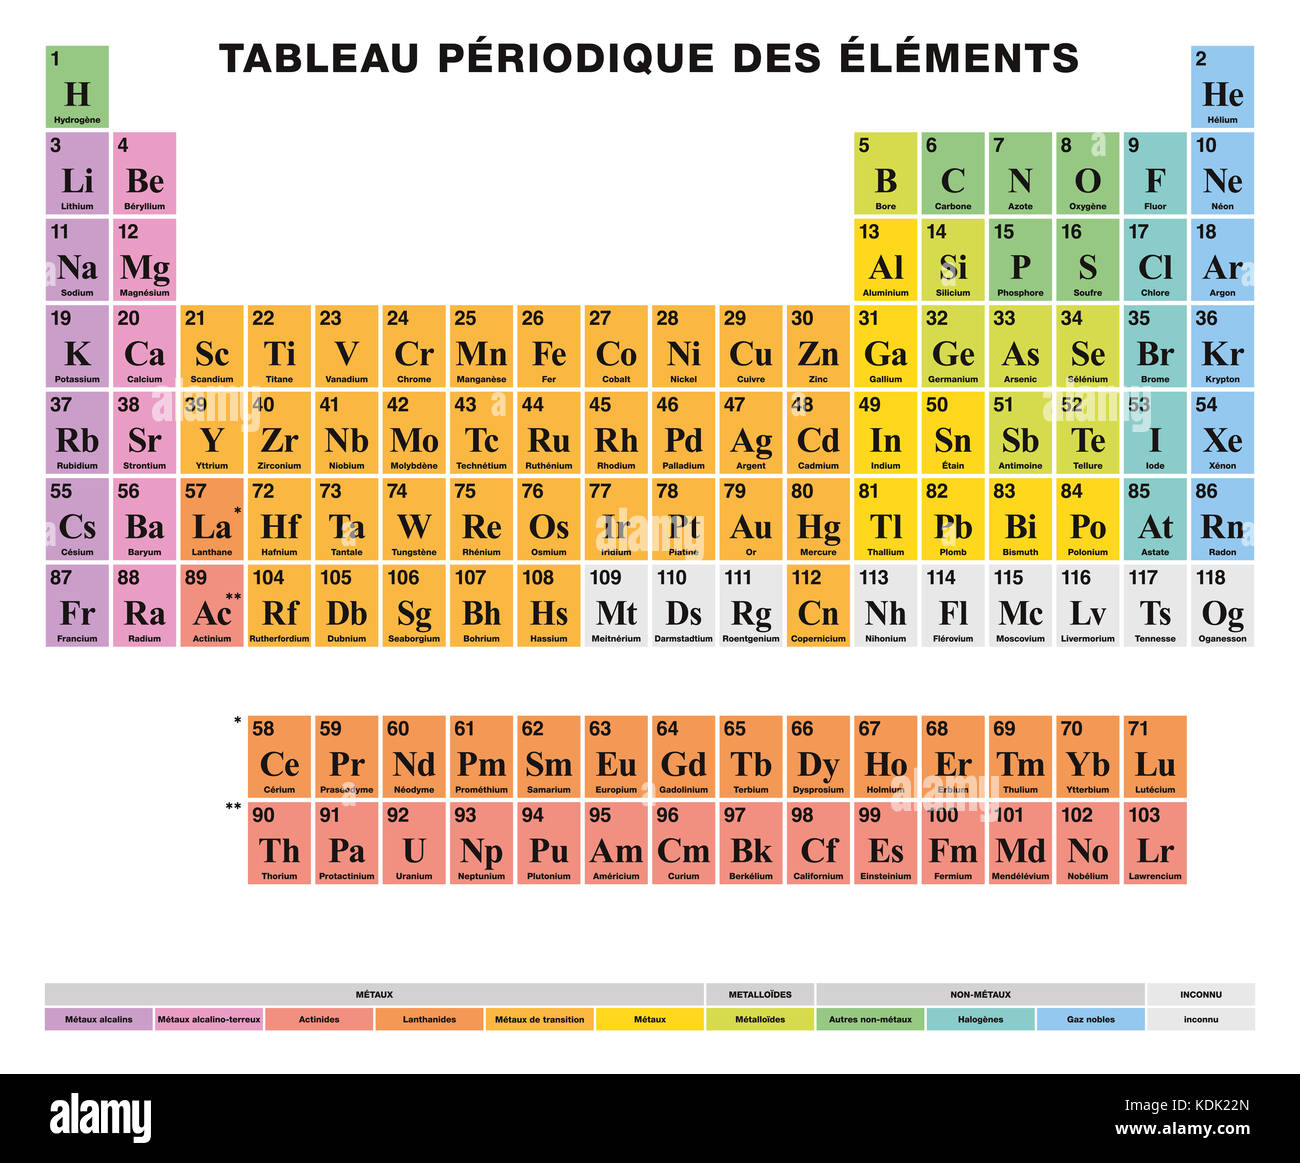 Alkali metal stock photos alkali metal stock images alamy periodic table of the elements french labeling tabular arrangement of 118 chemical elements urtaz Image collections